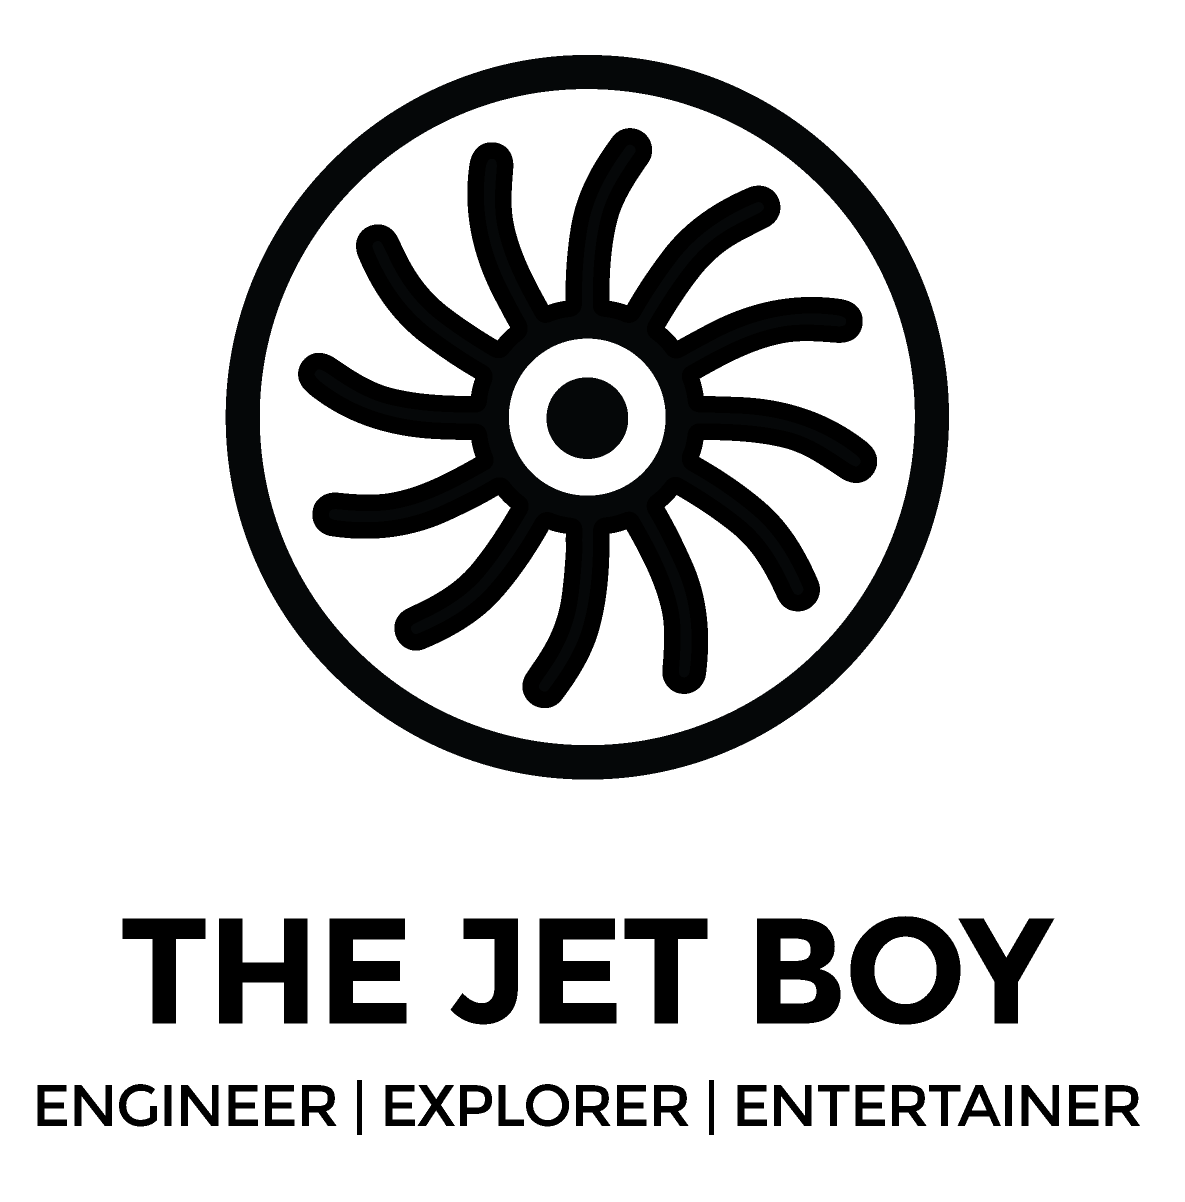 TheJetBoy